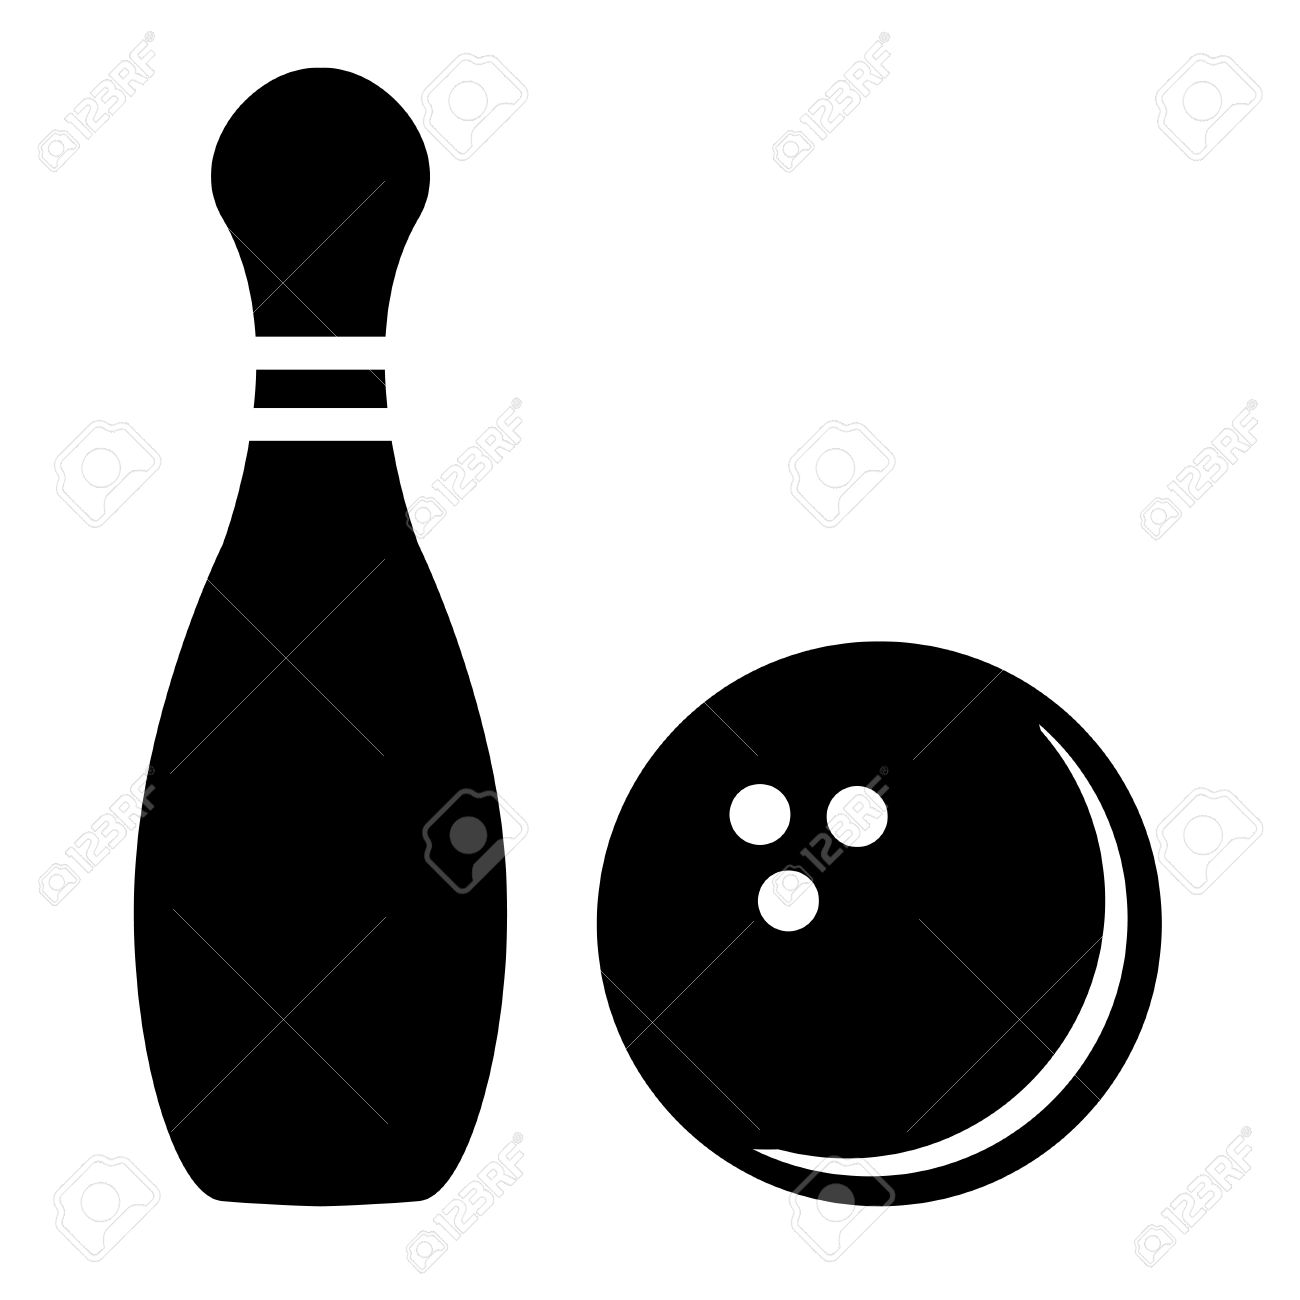 silhouette of bowling pins and bowling ball royalty free cliparts rh 123rf com bowling pin vector images ten pin bowling vector